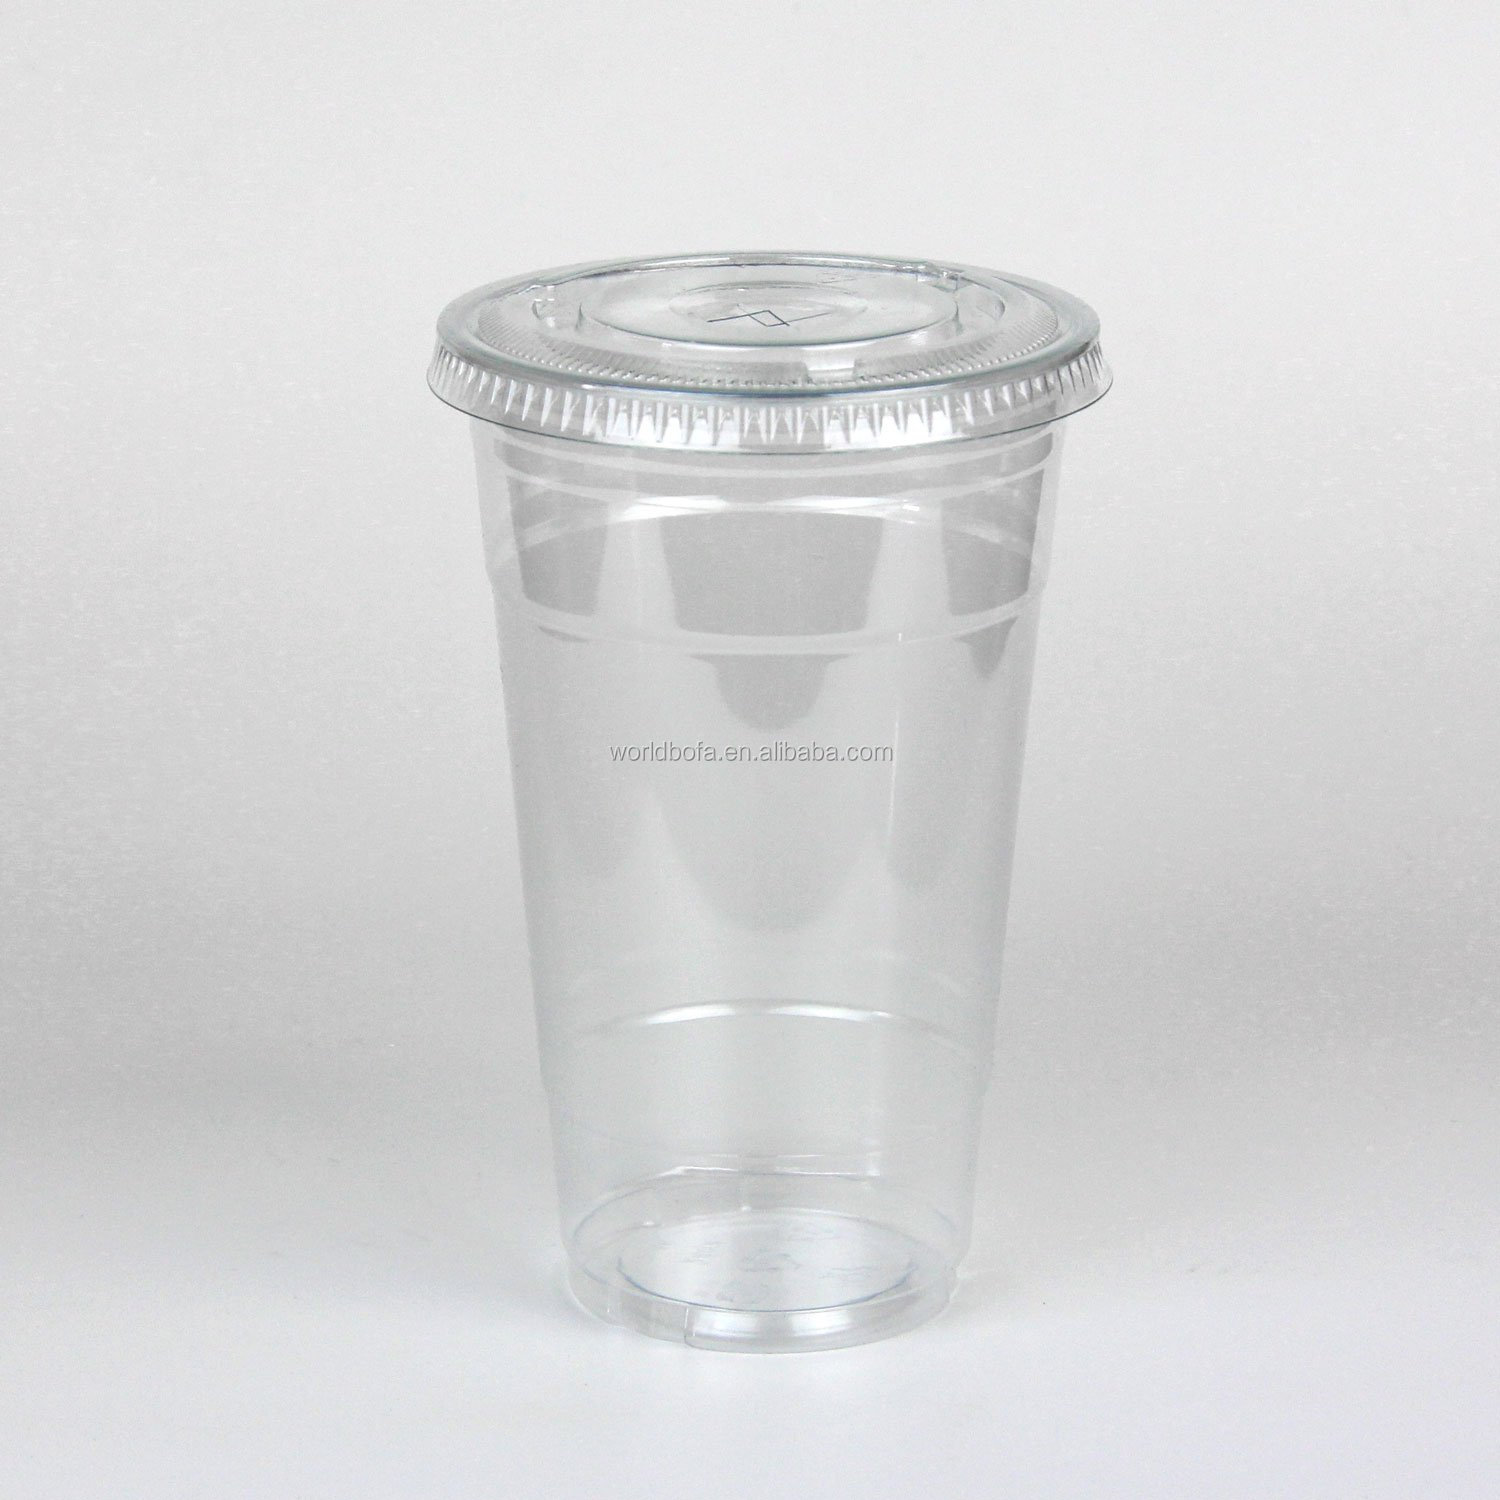 Disposable Plastic Cups With Flat Slotted Lids for Iced Cold Drinks